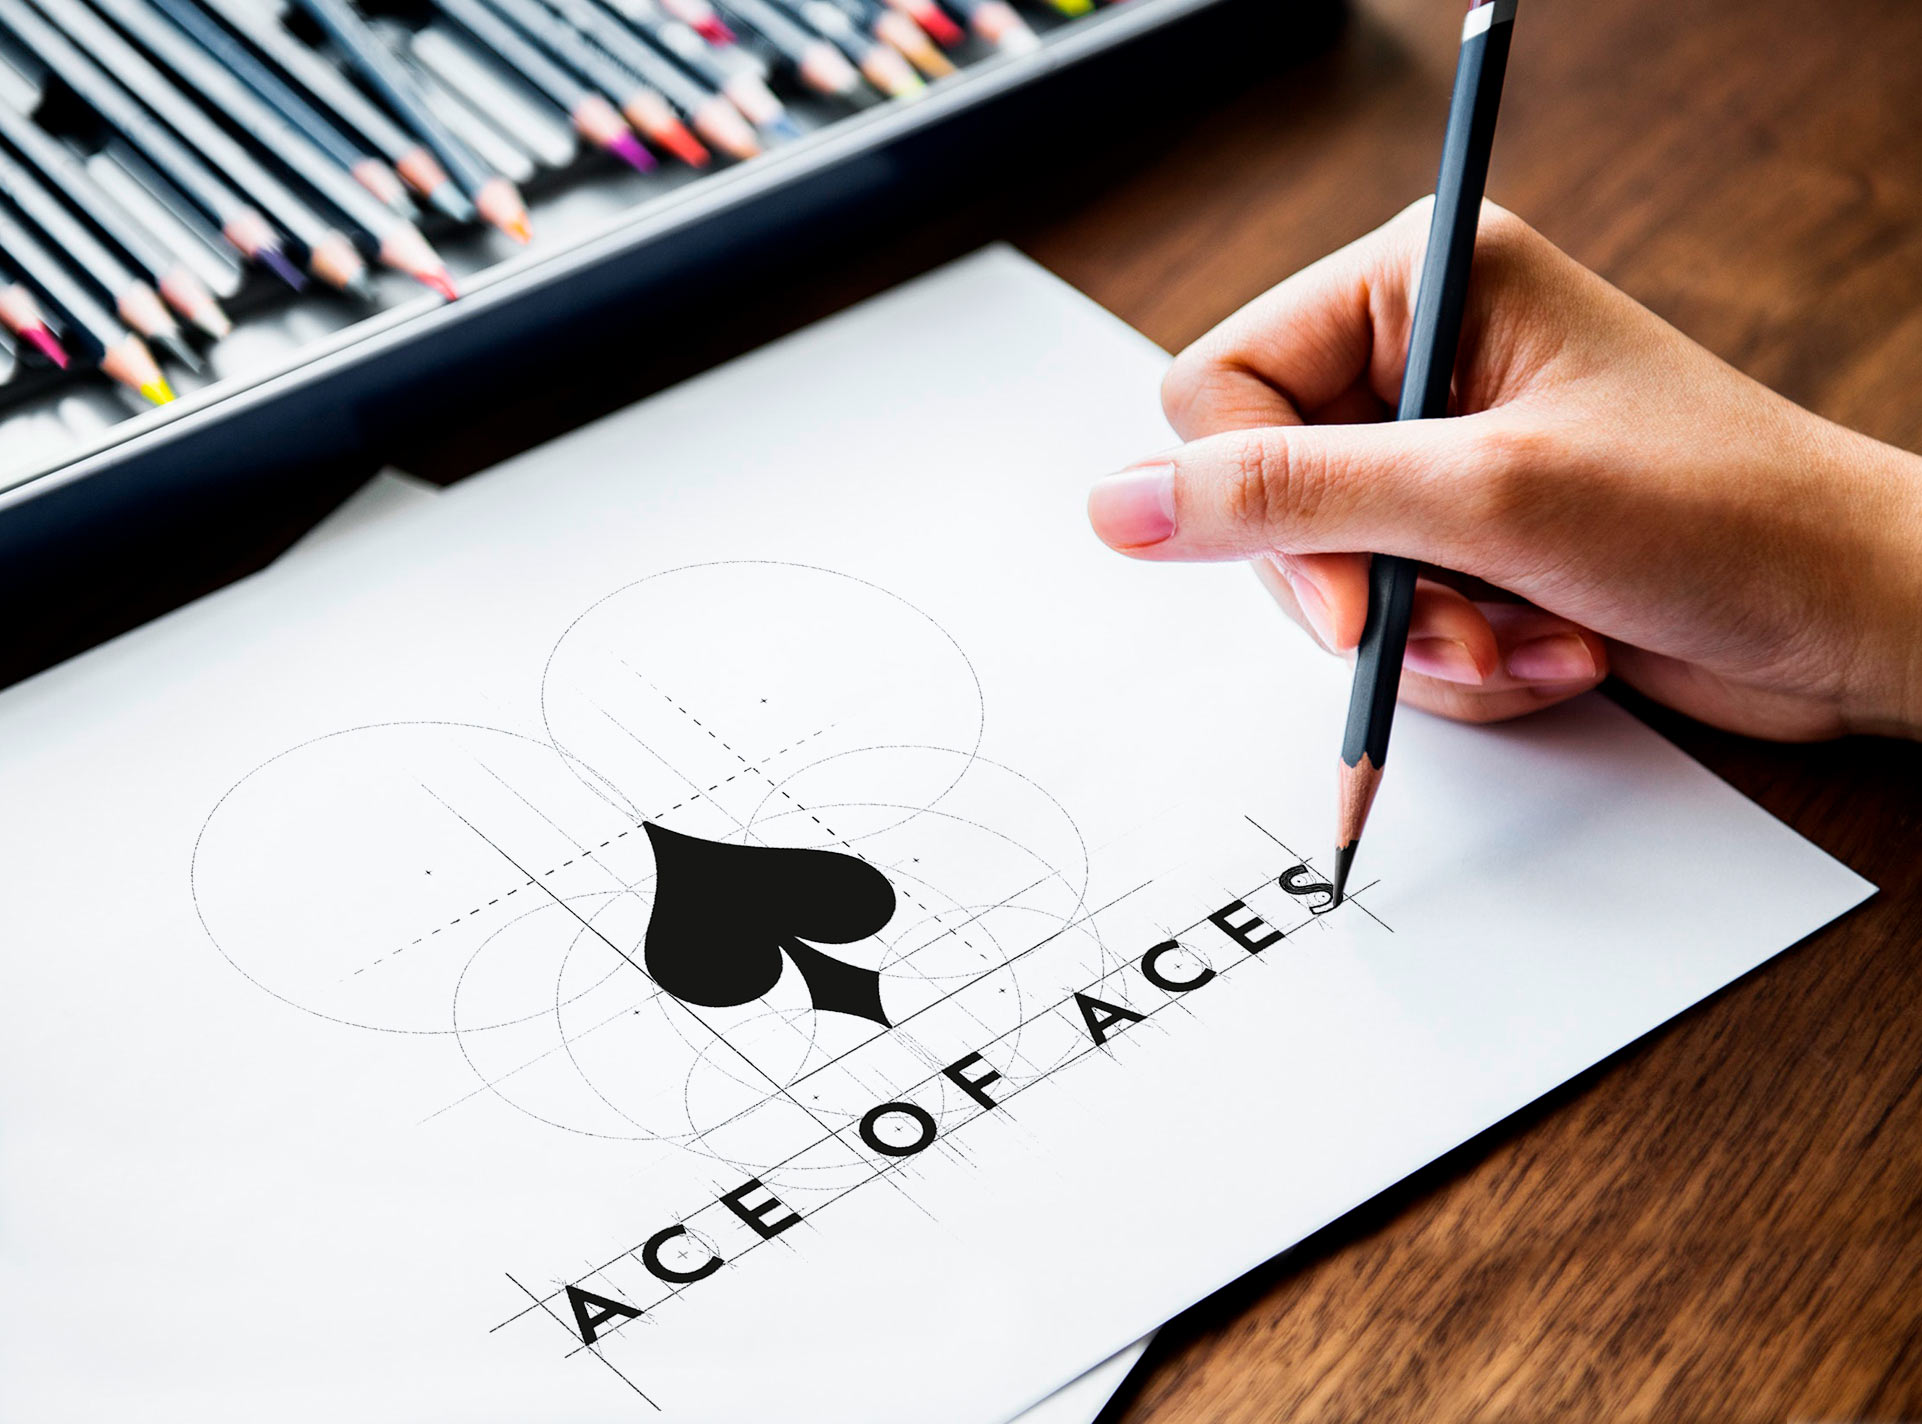 The 1 of Aces logo sketched